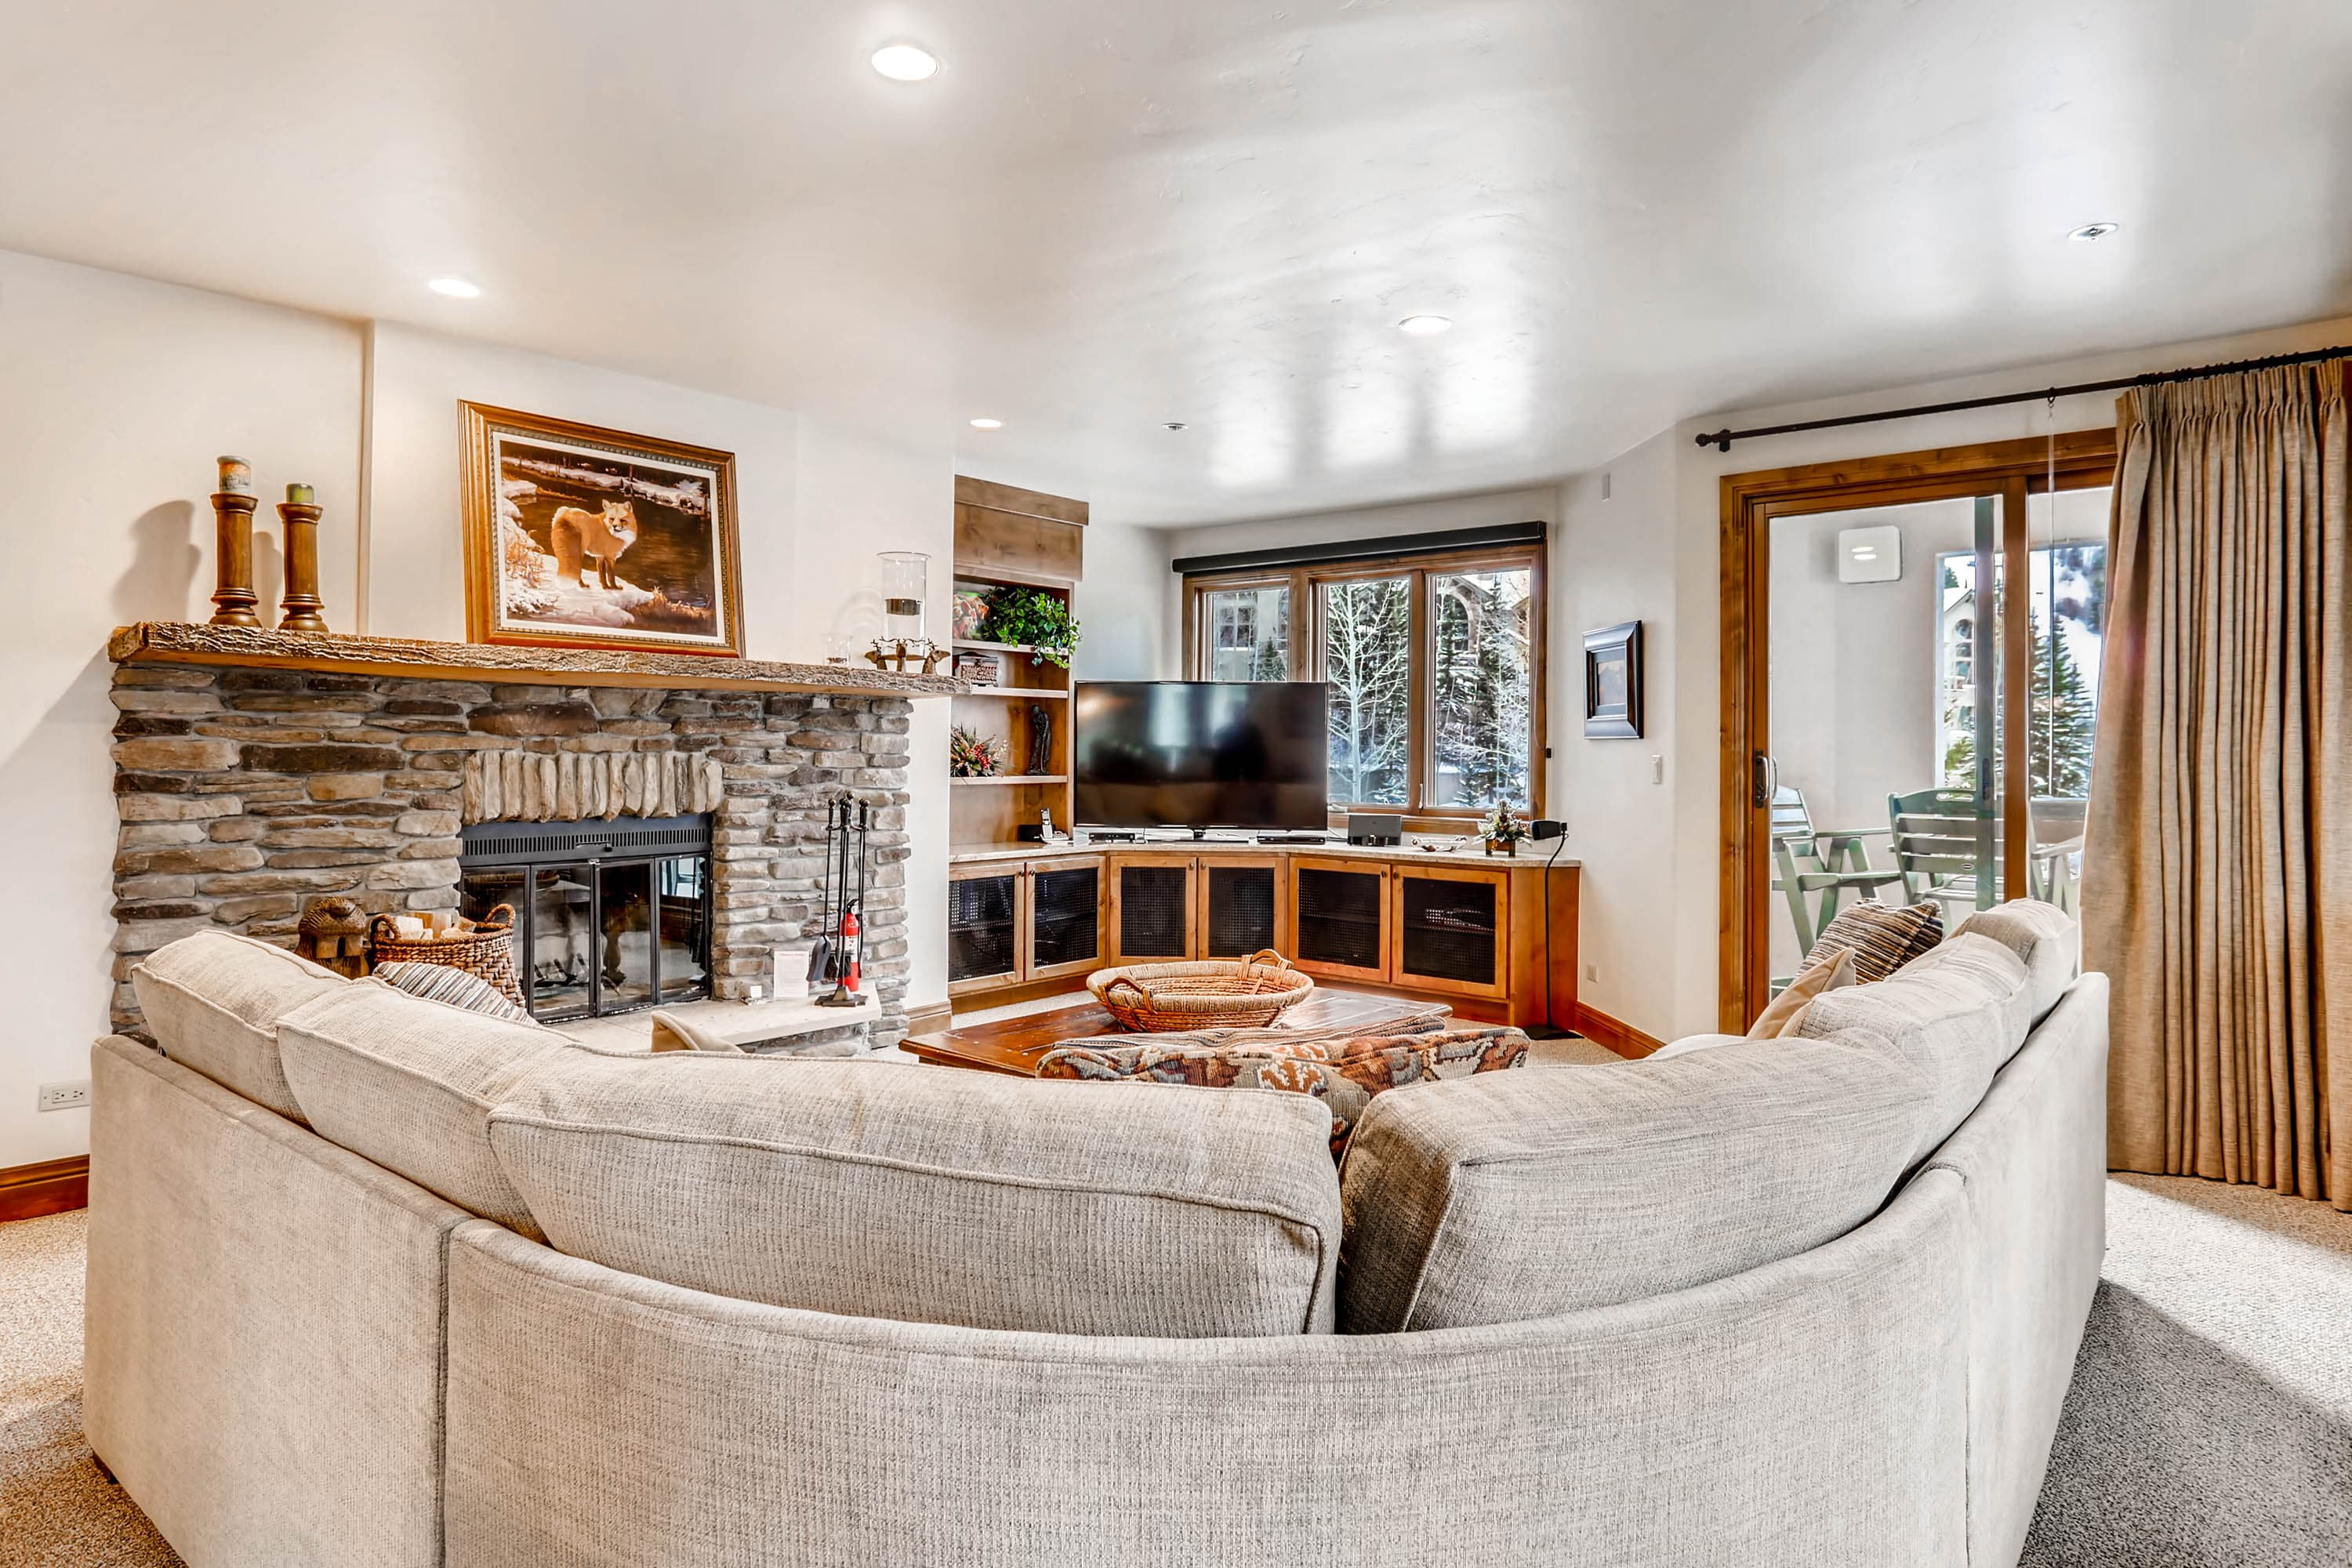 Property Image 1 - Remodeled Condo in Beaver Creek with Ski Run Views